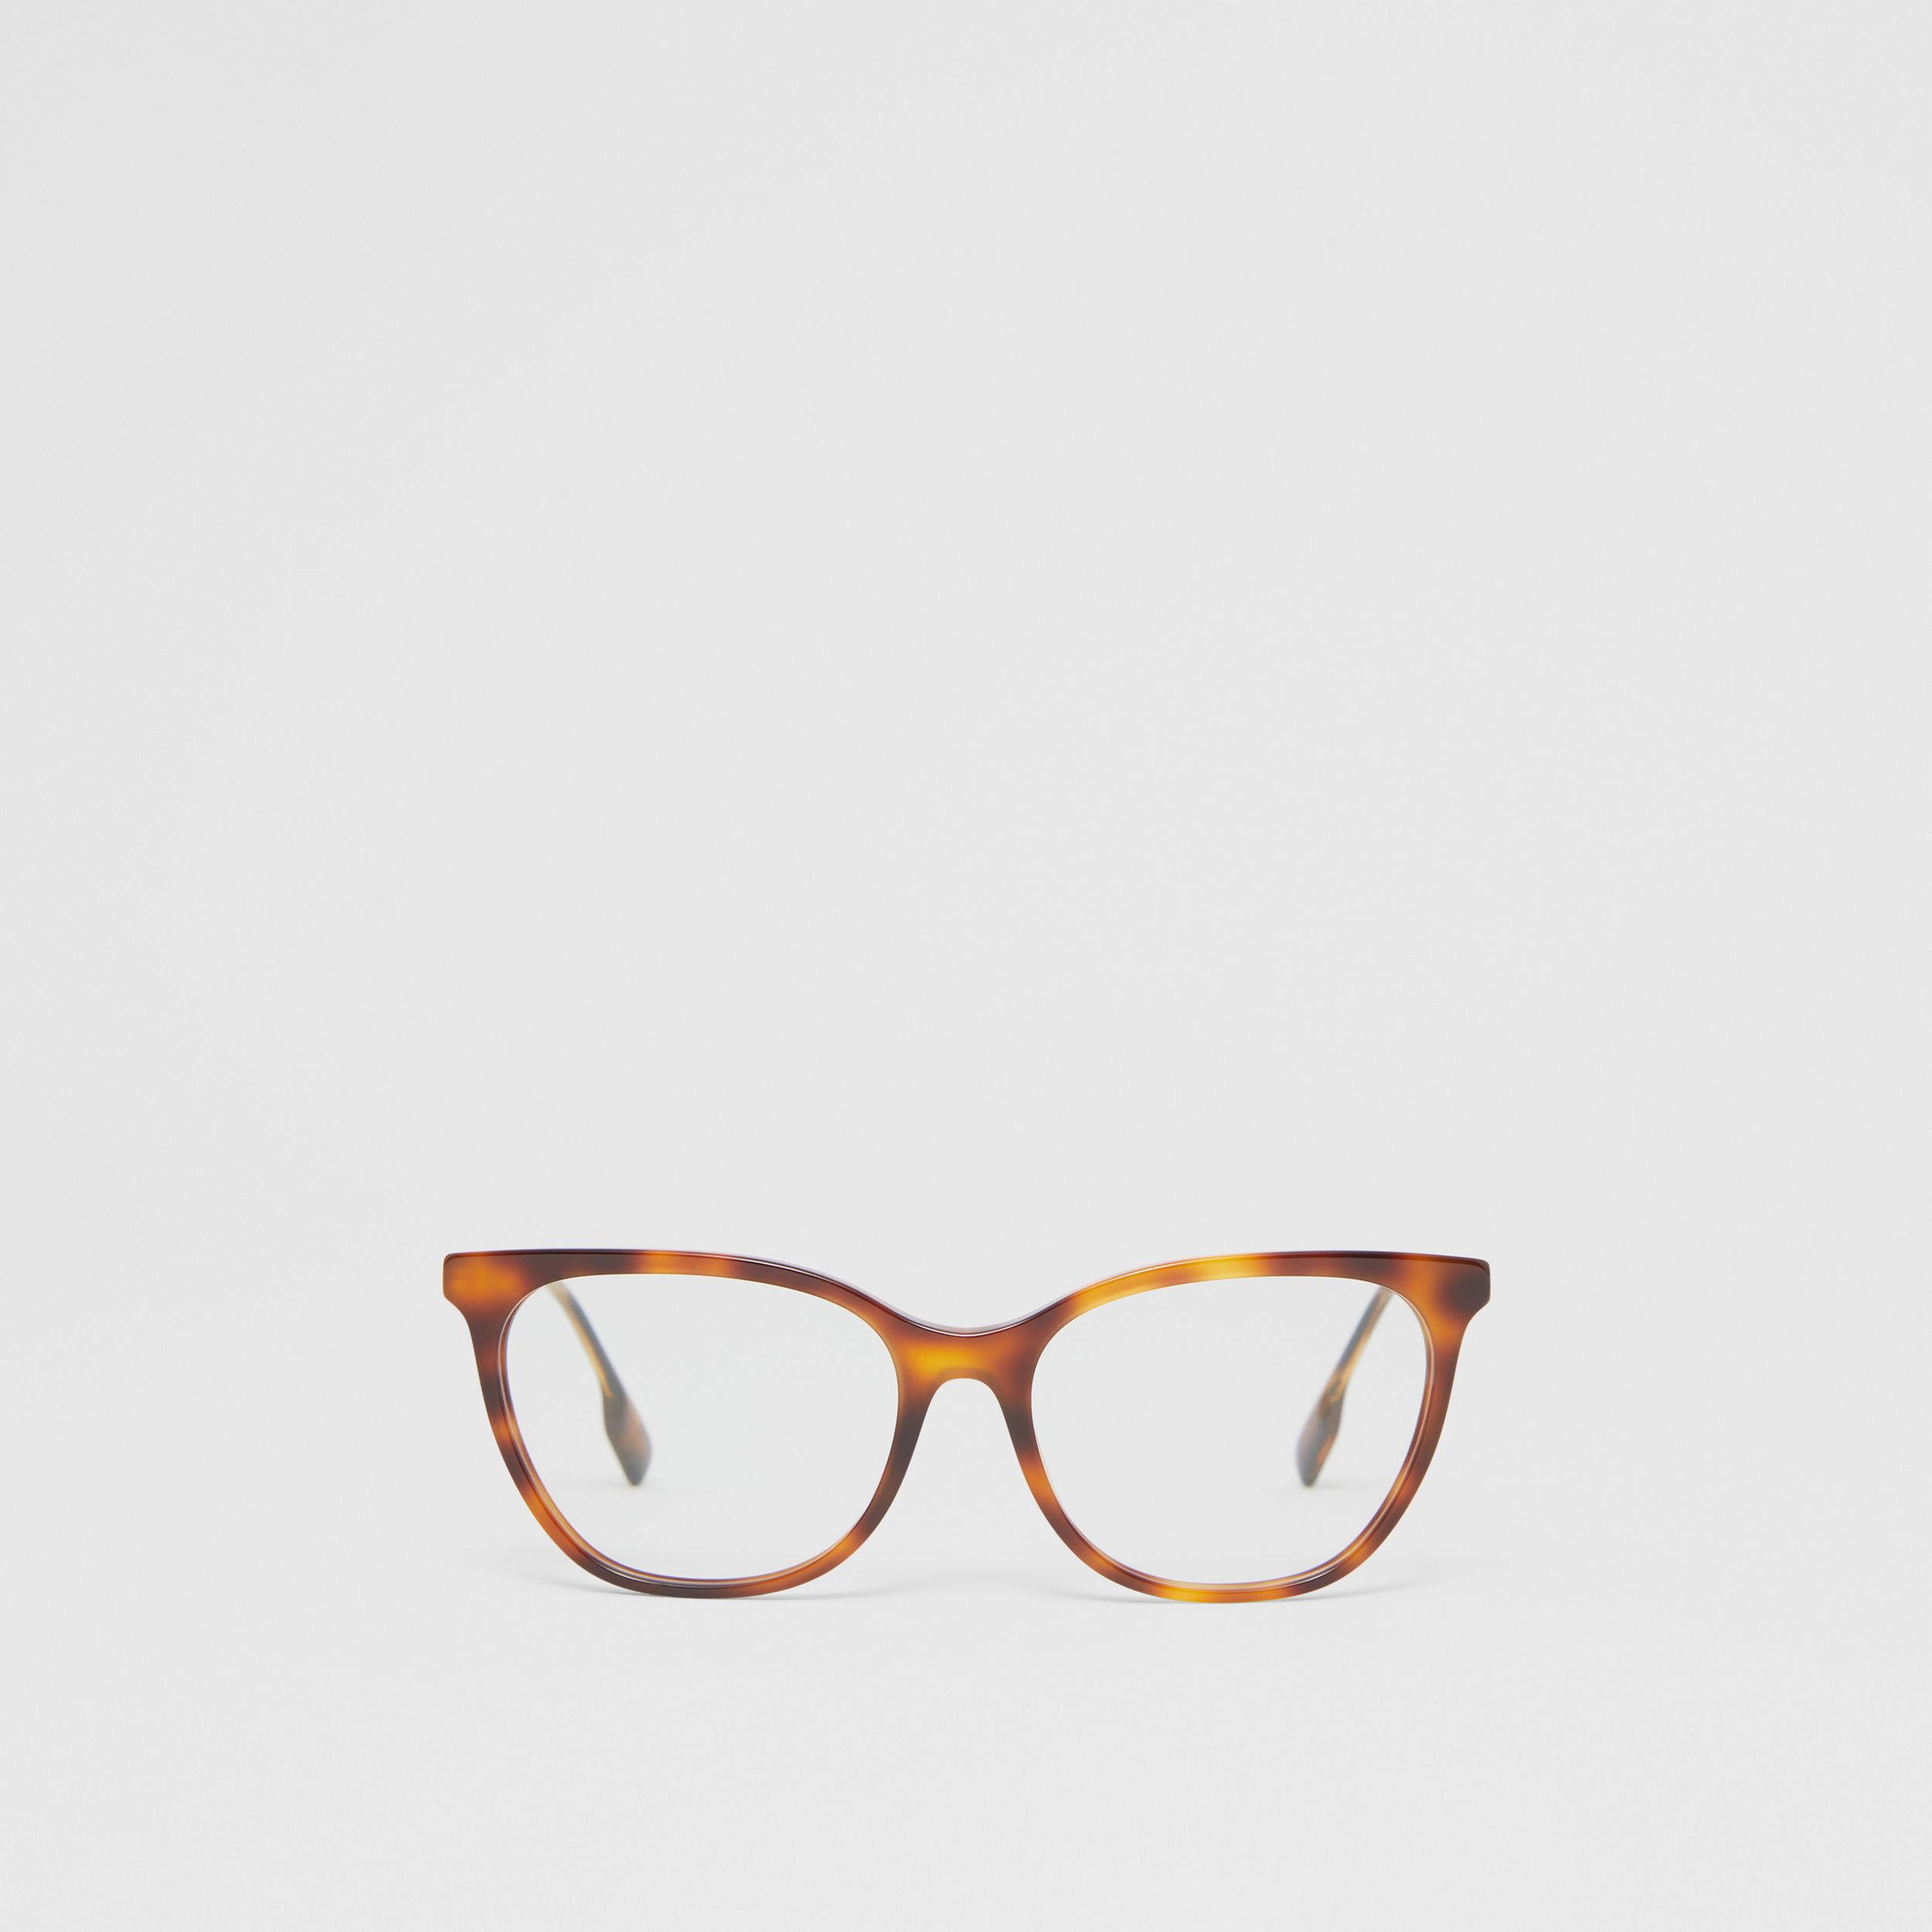 Cat-eye Optical Frames in Dark Amber Tortoiseshell - Women | Burberry Australia - 1